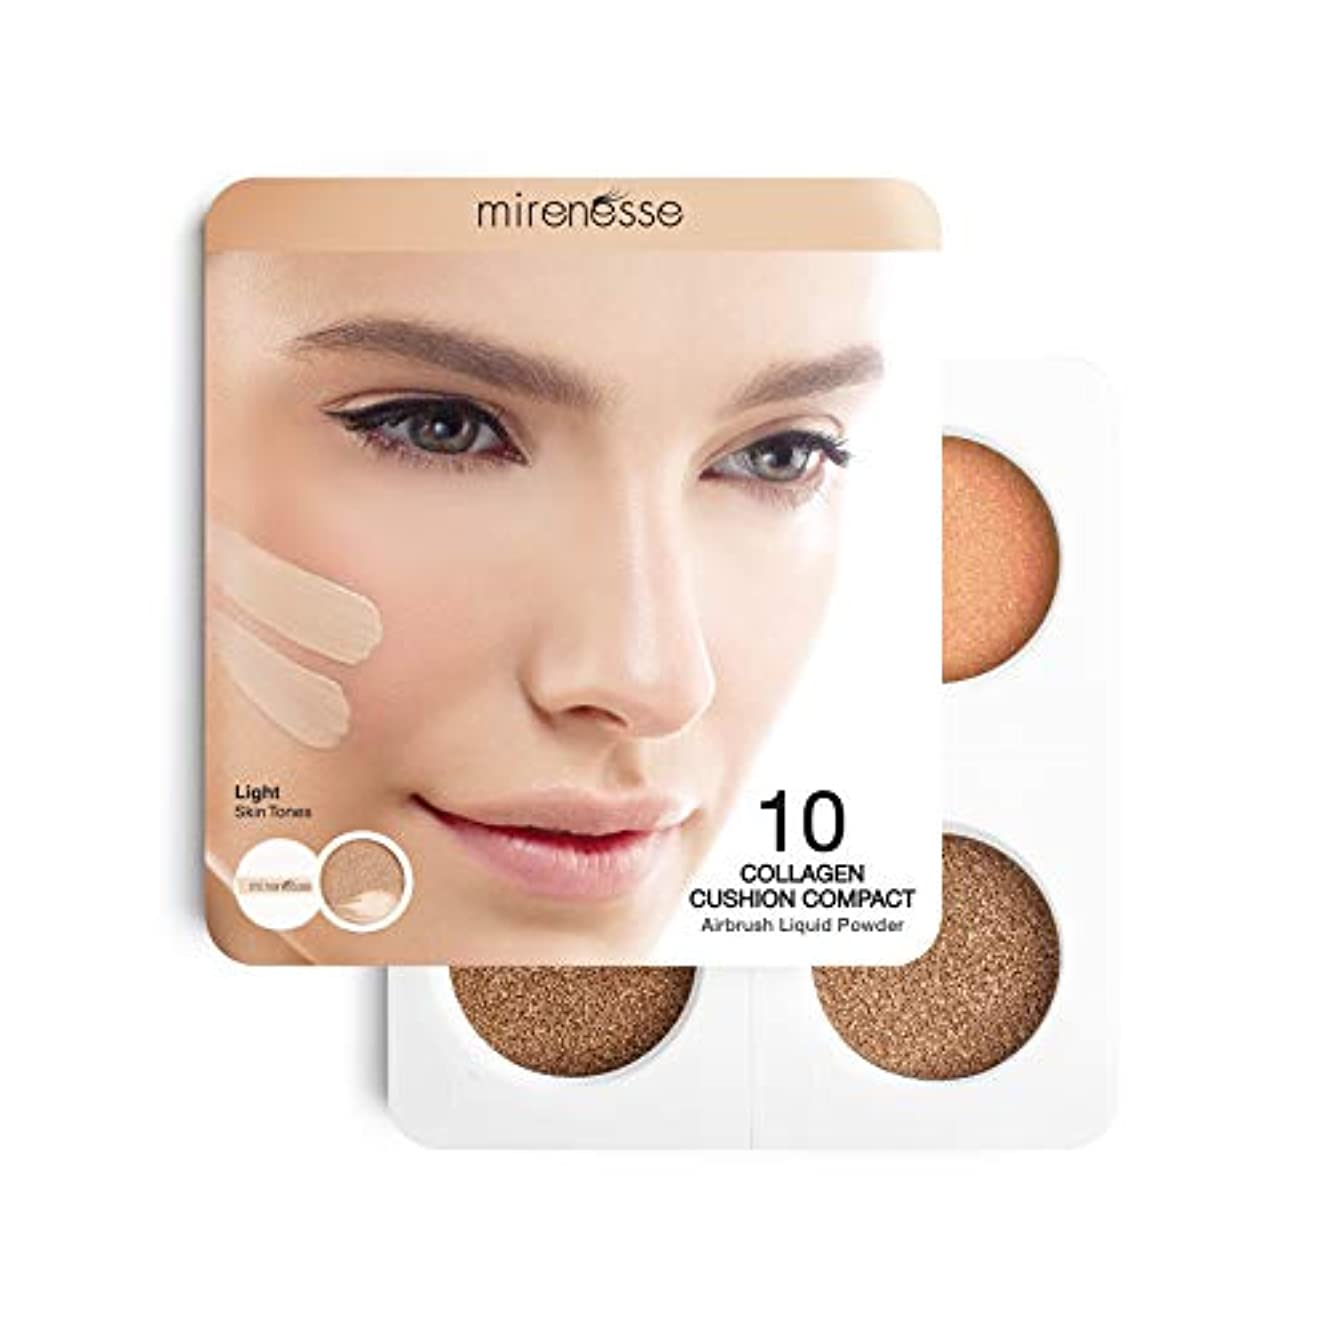 一方、恐ろしいです証書Mirenesse Cosmetics 4Pce 10 Collagen Cushion Foundation Sampler - Light/Medium